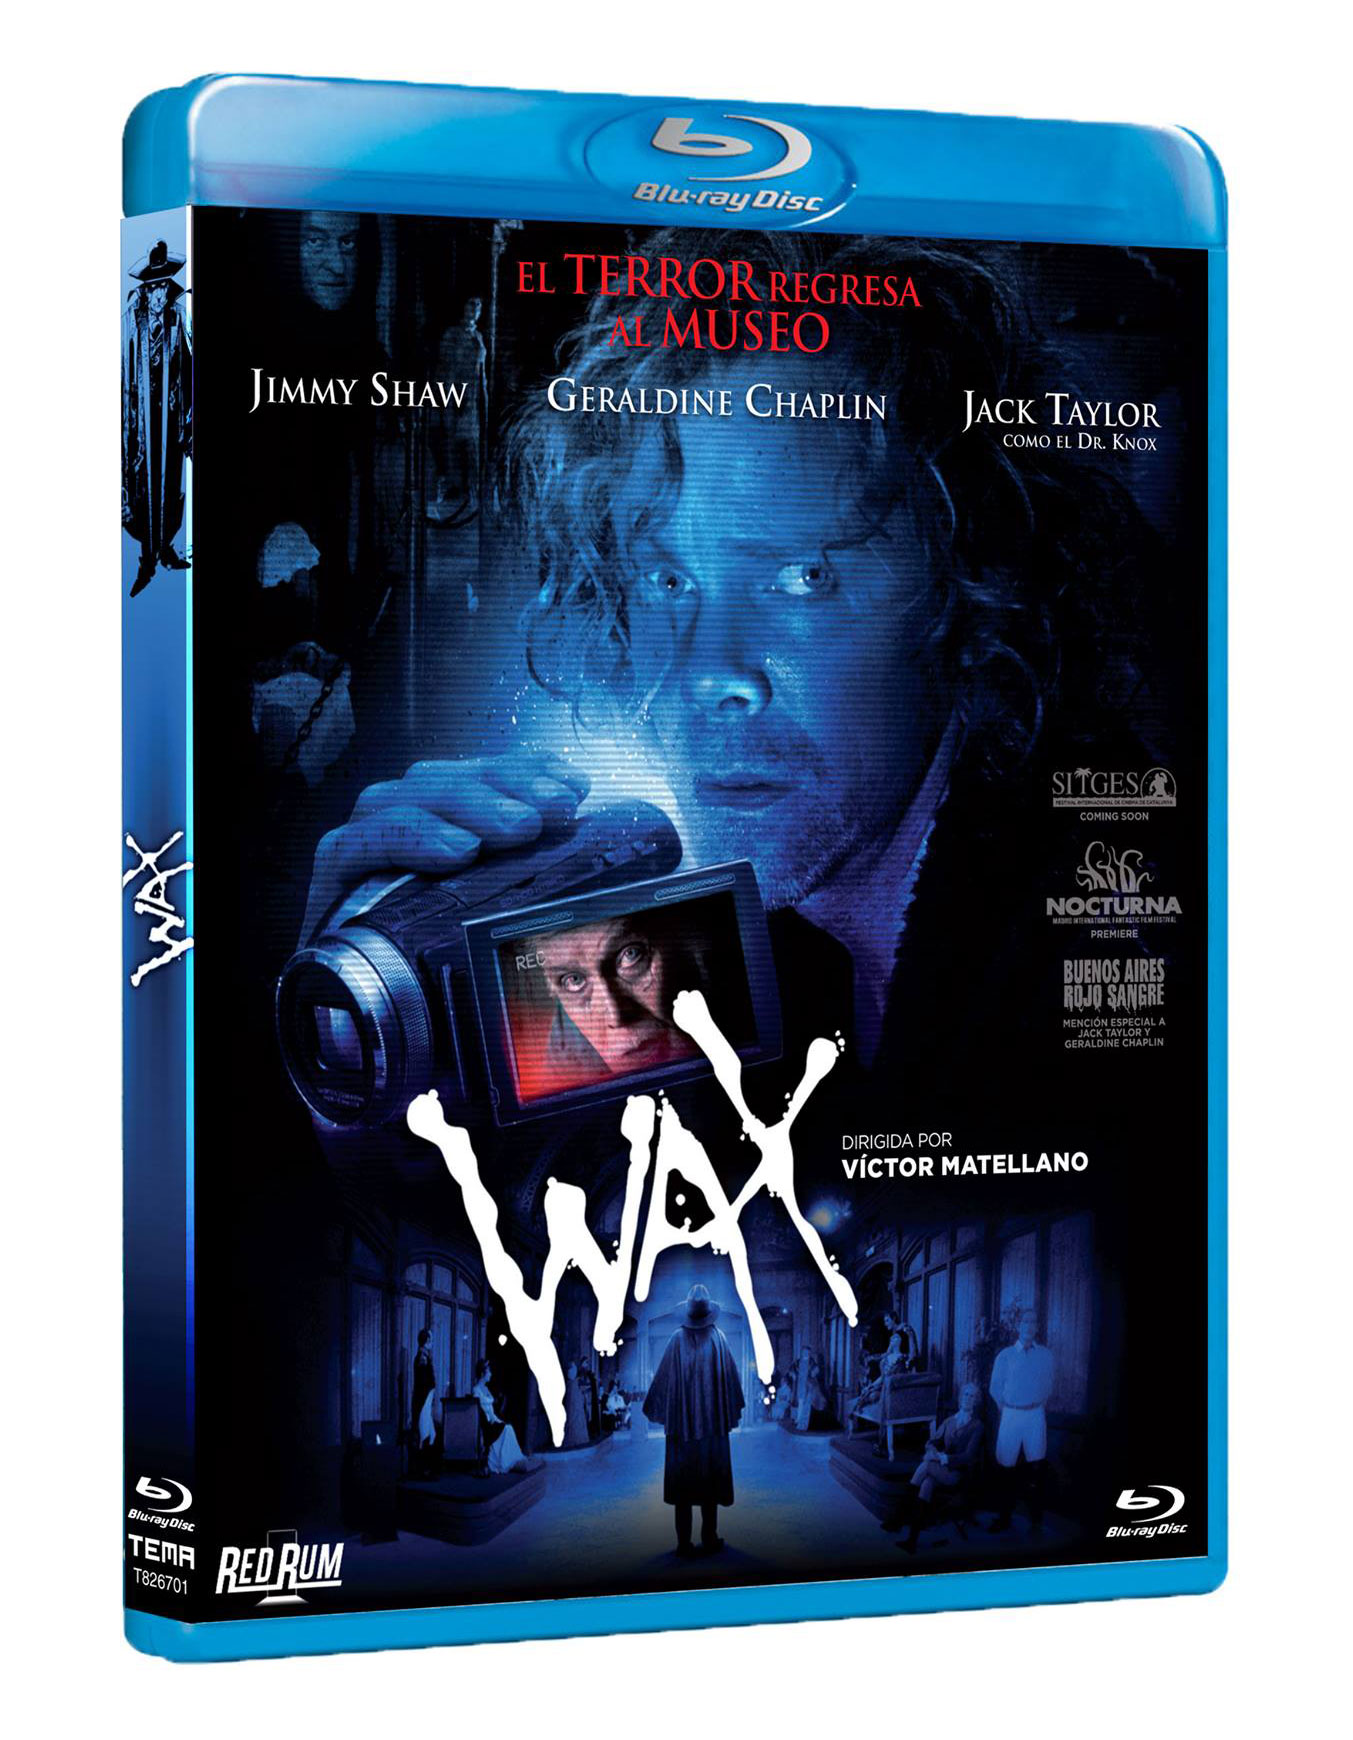 WAX carátula DB Blu-Ray